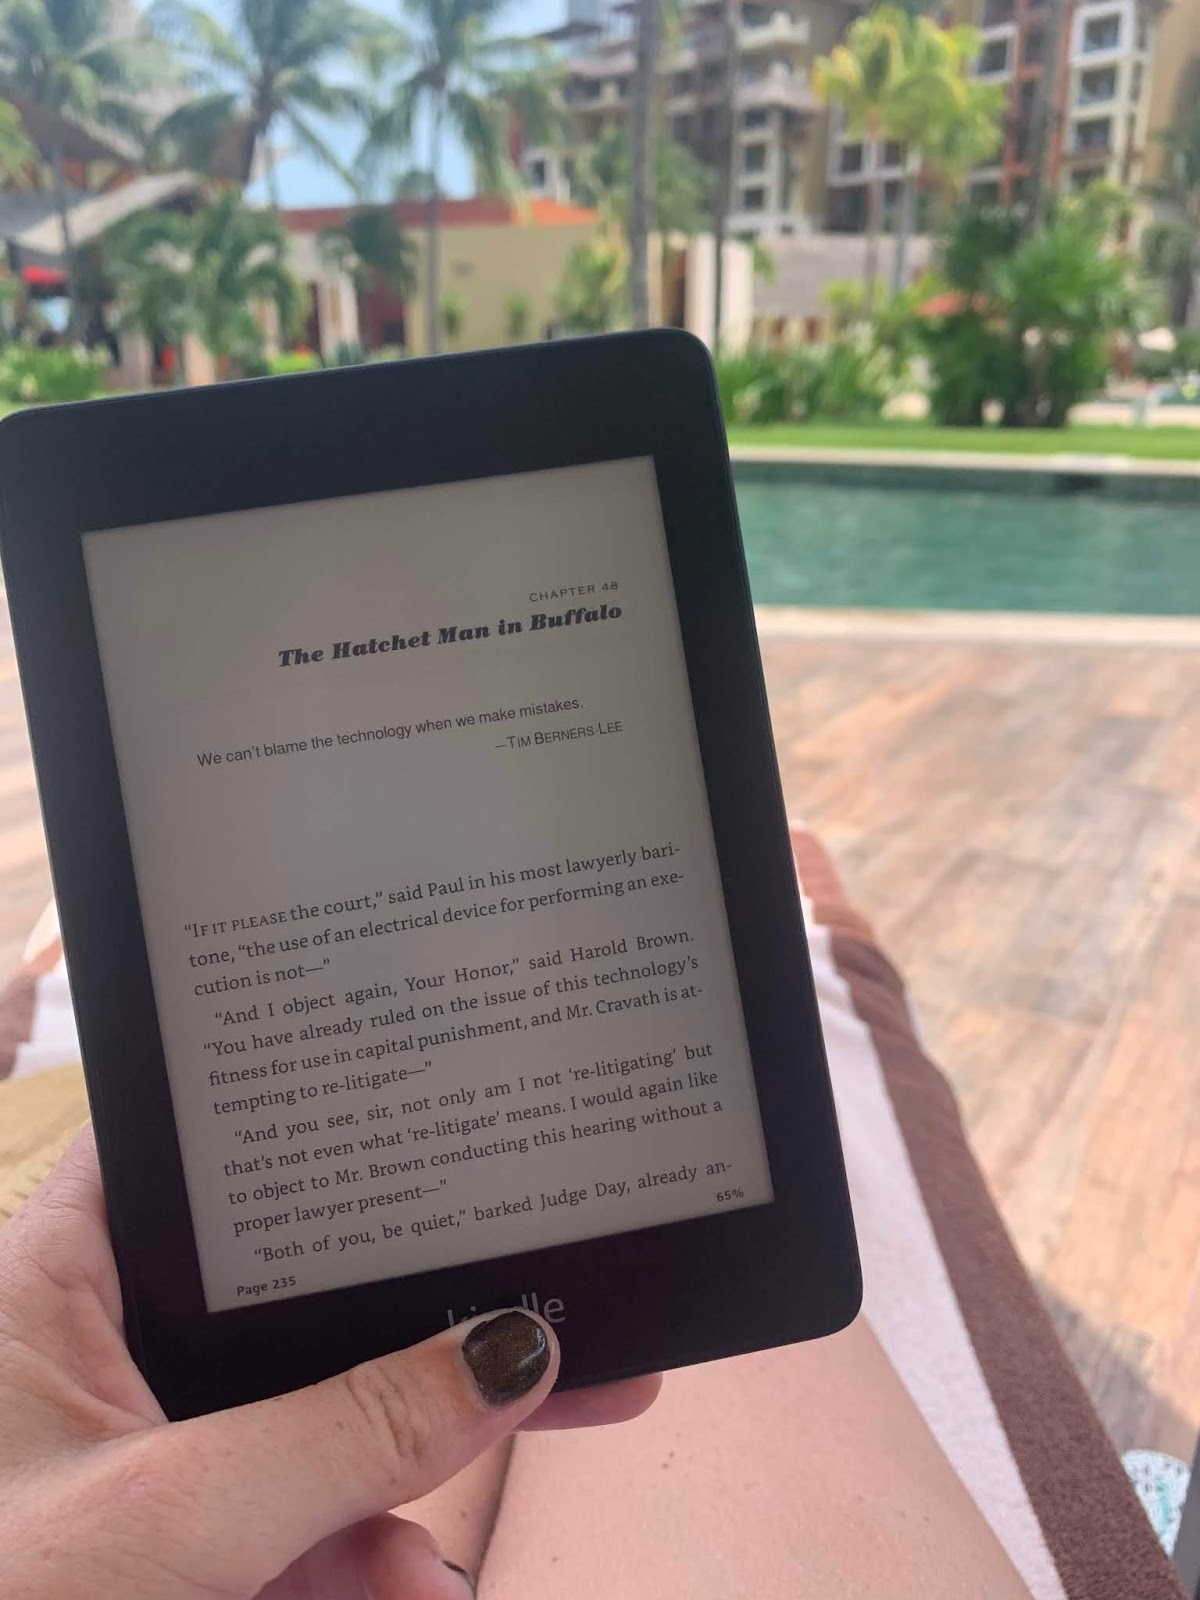 a hand is holding a kindle with the first page of a new chapter showing, there is a pool, lots of greenery, and palm trees in the background